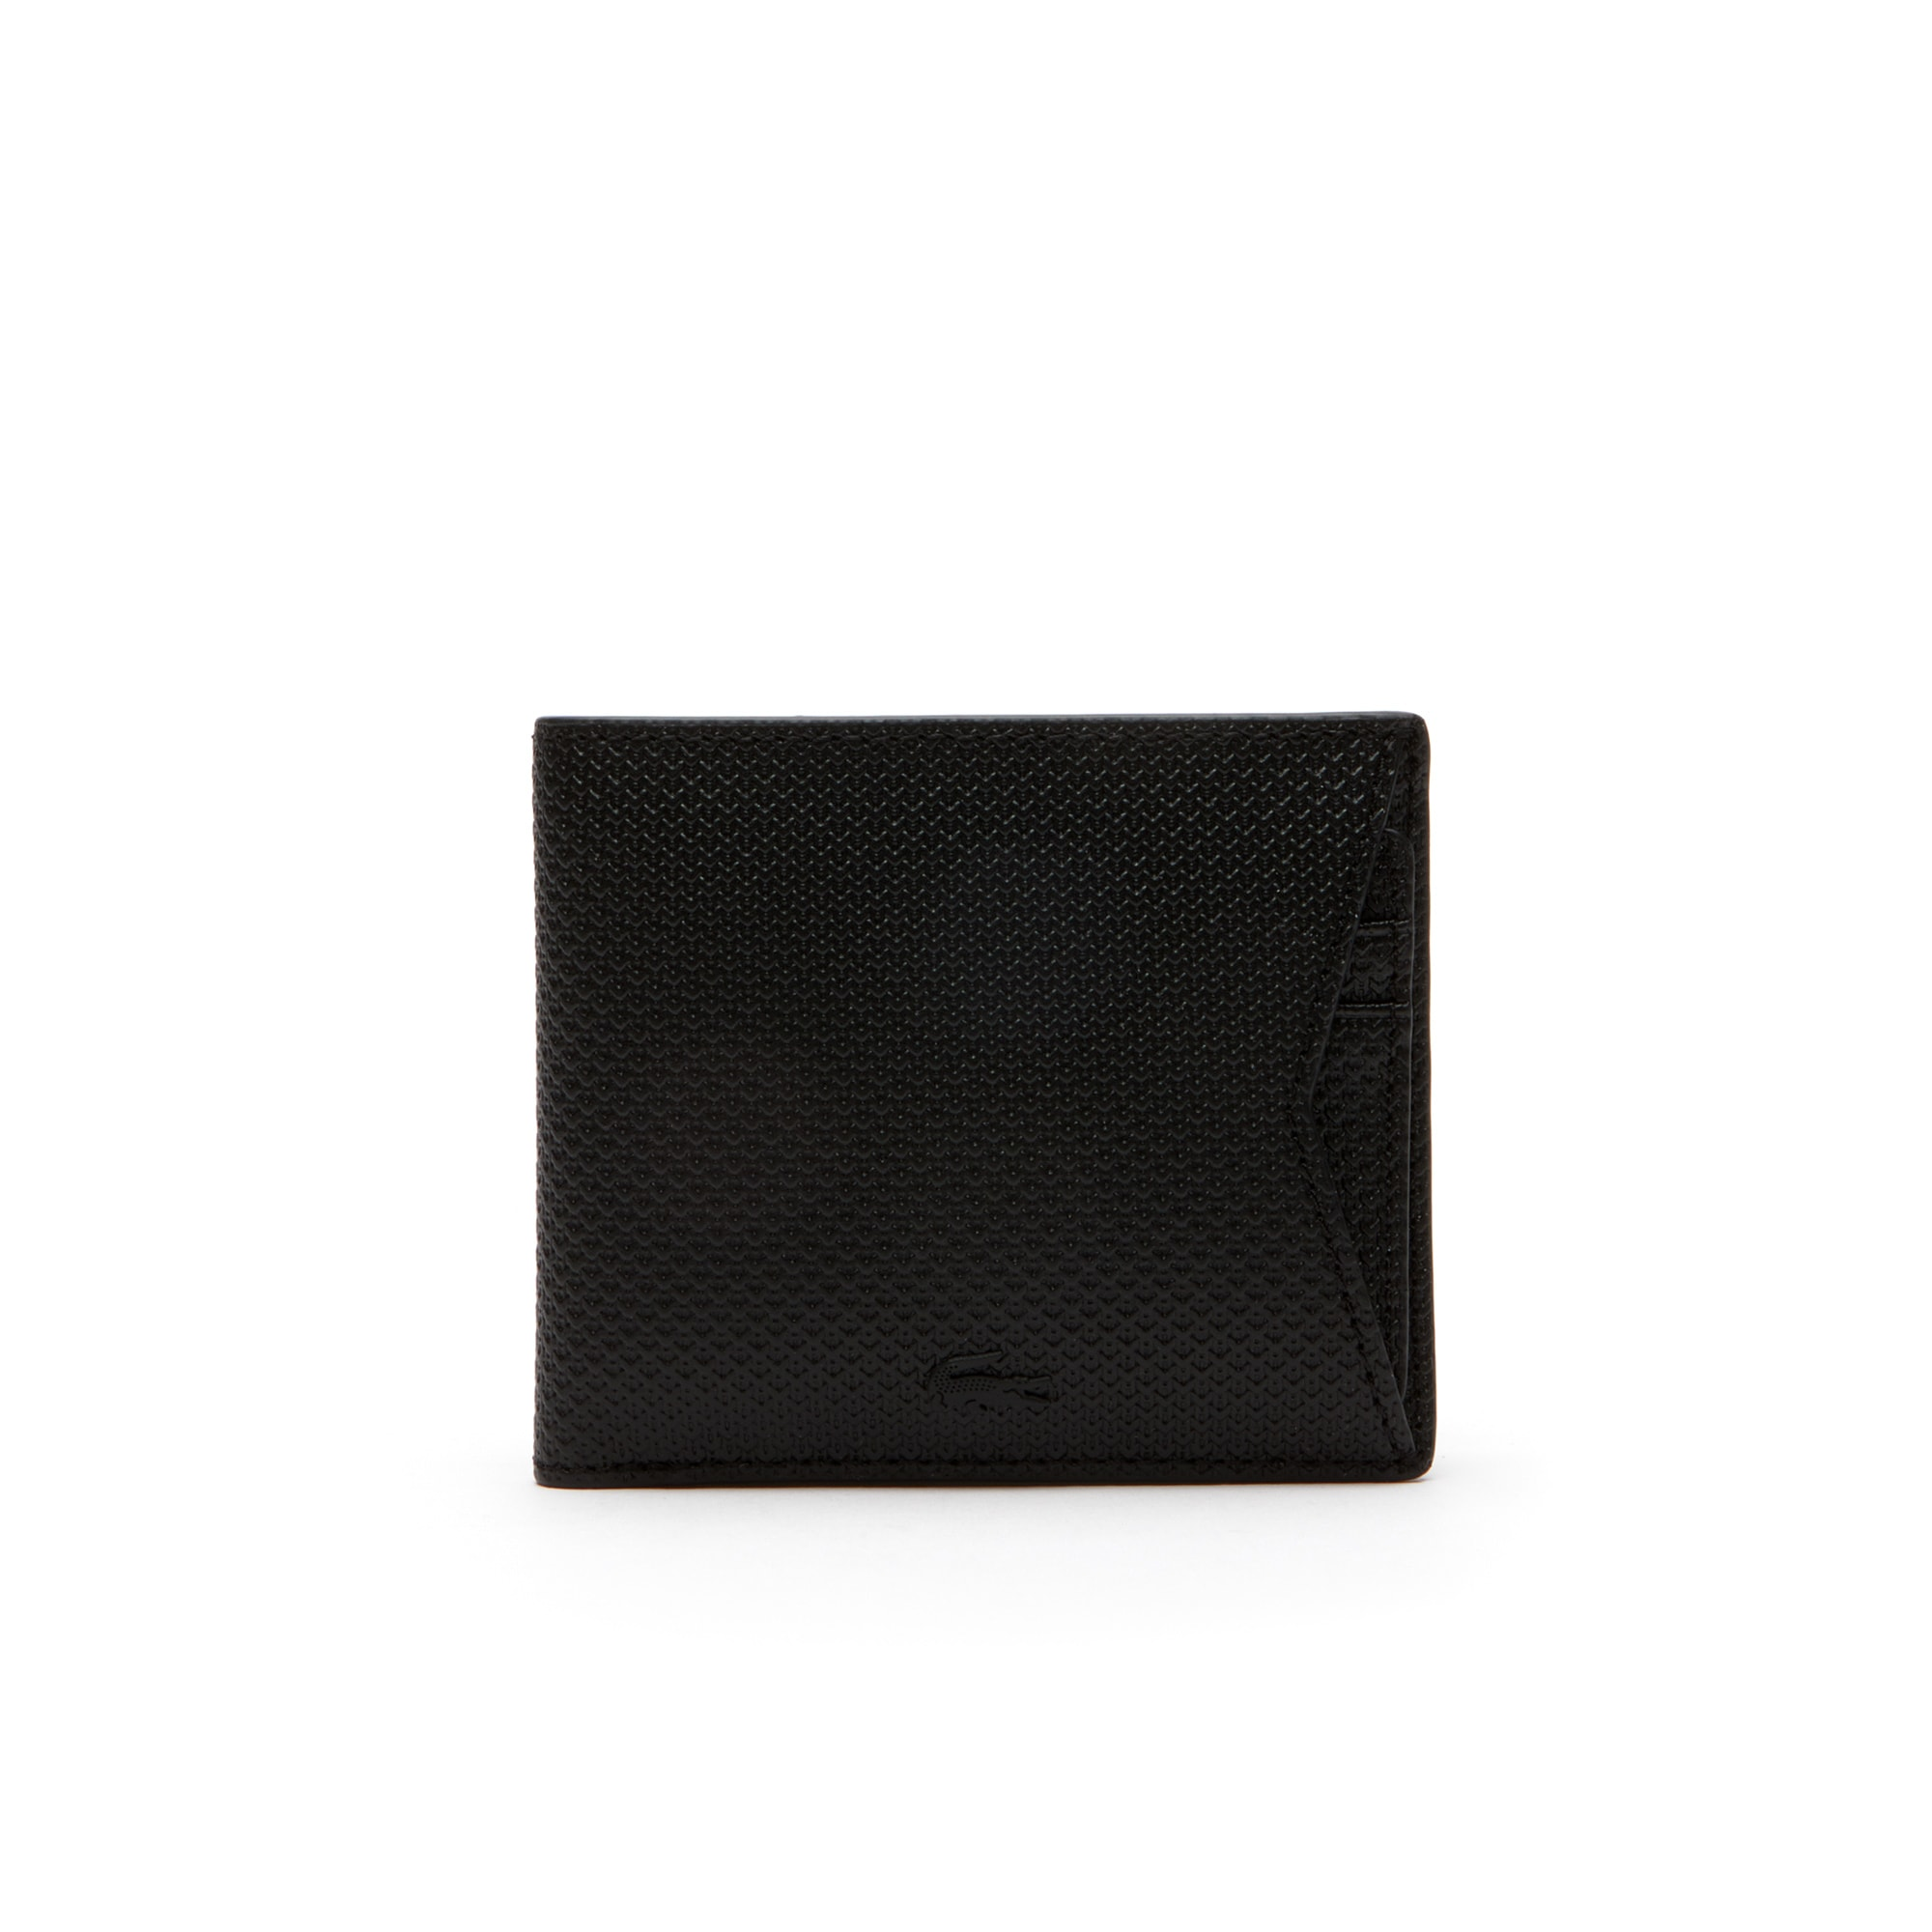 Men's Chantaco Monochrome Coated Leather Wallet With Card Holder